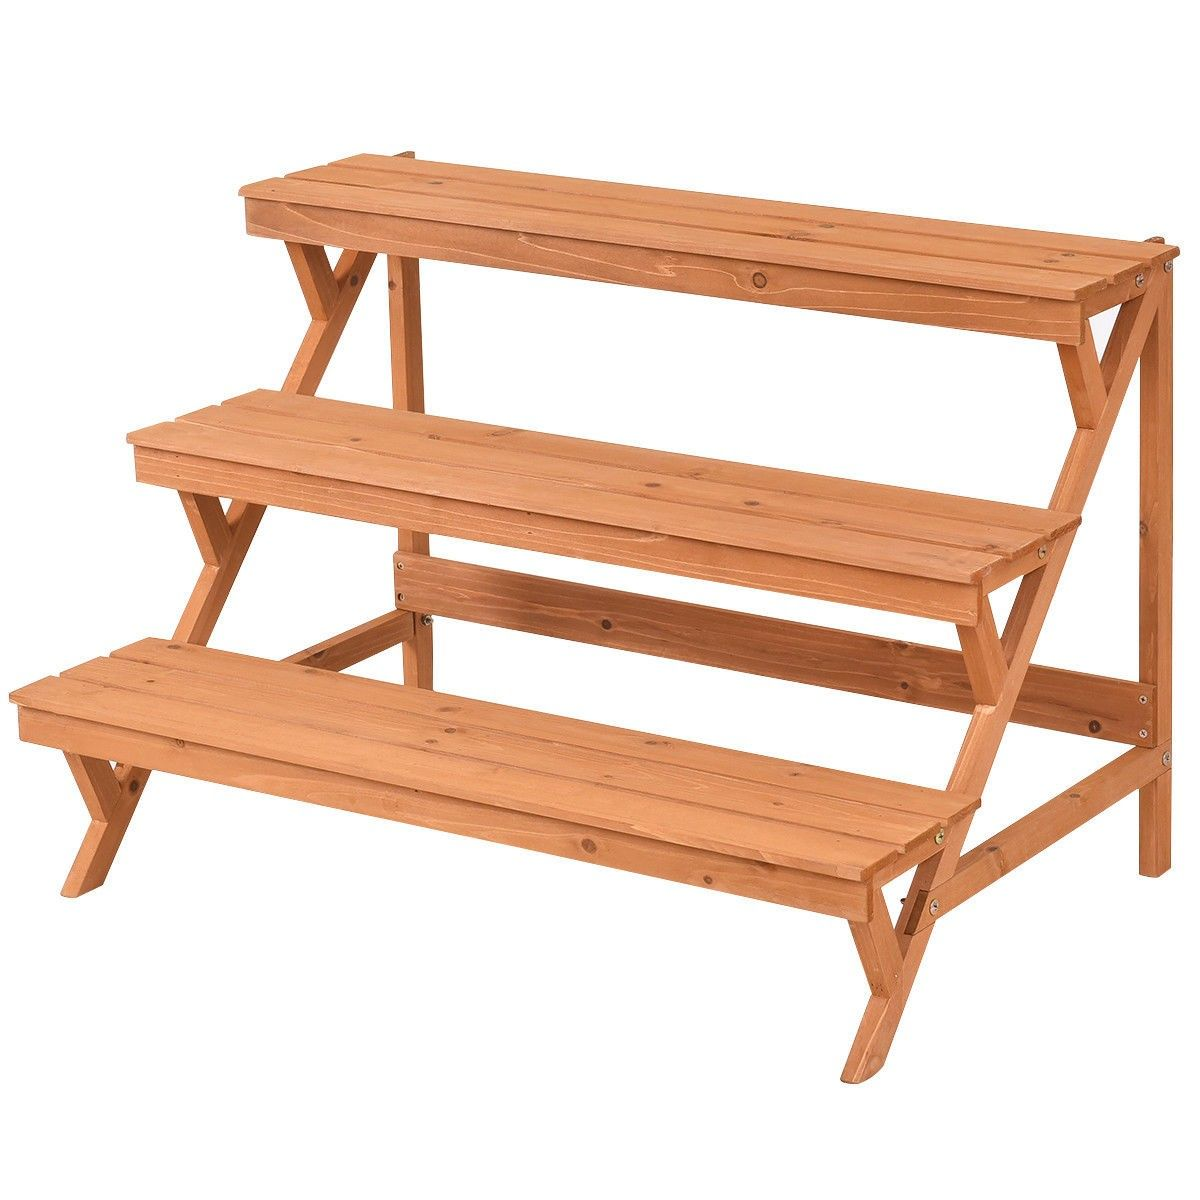 3 Tiers Wooden Step Ladder Plant Pot Rack Stand Wood Plant Stand Wooden Steps Wood Steps